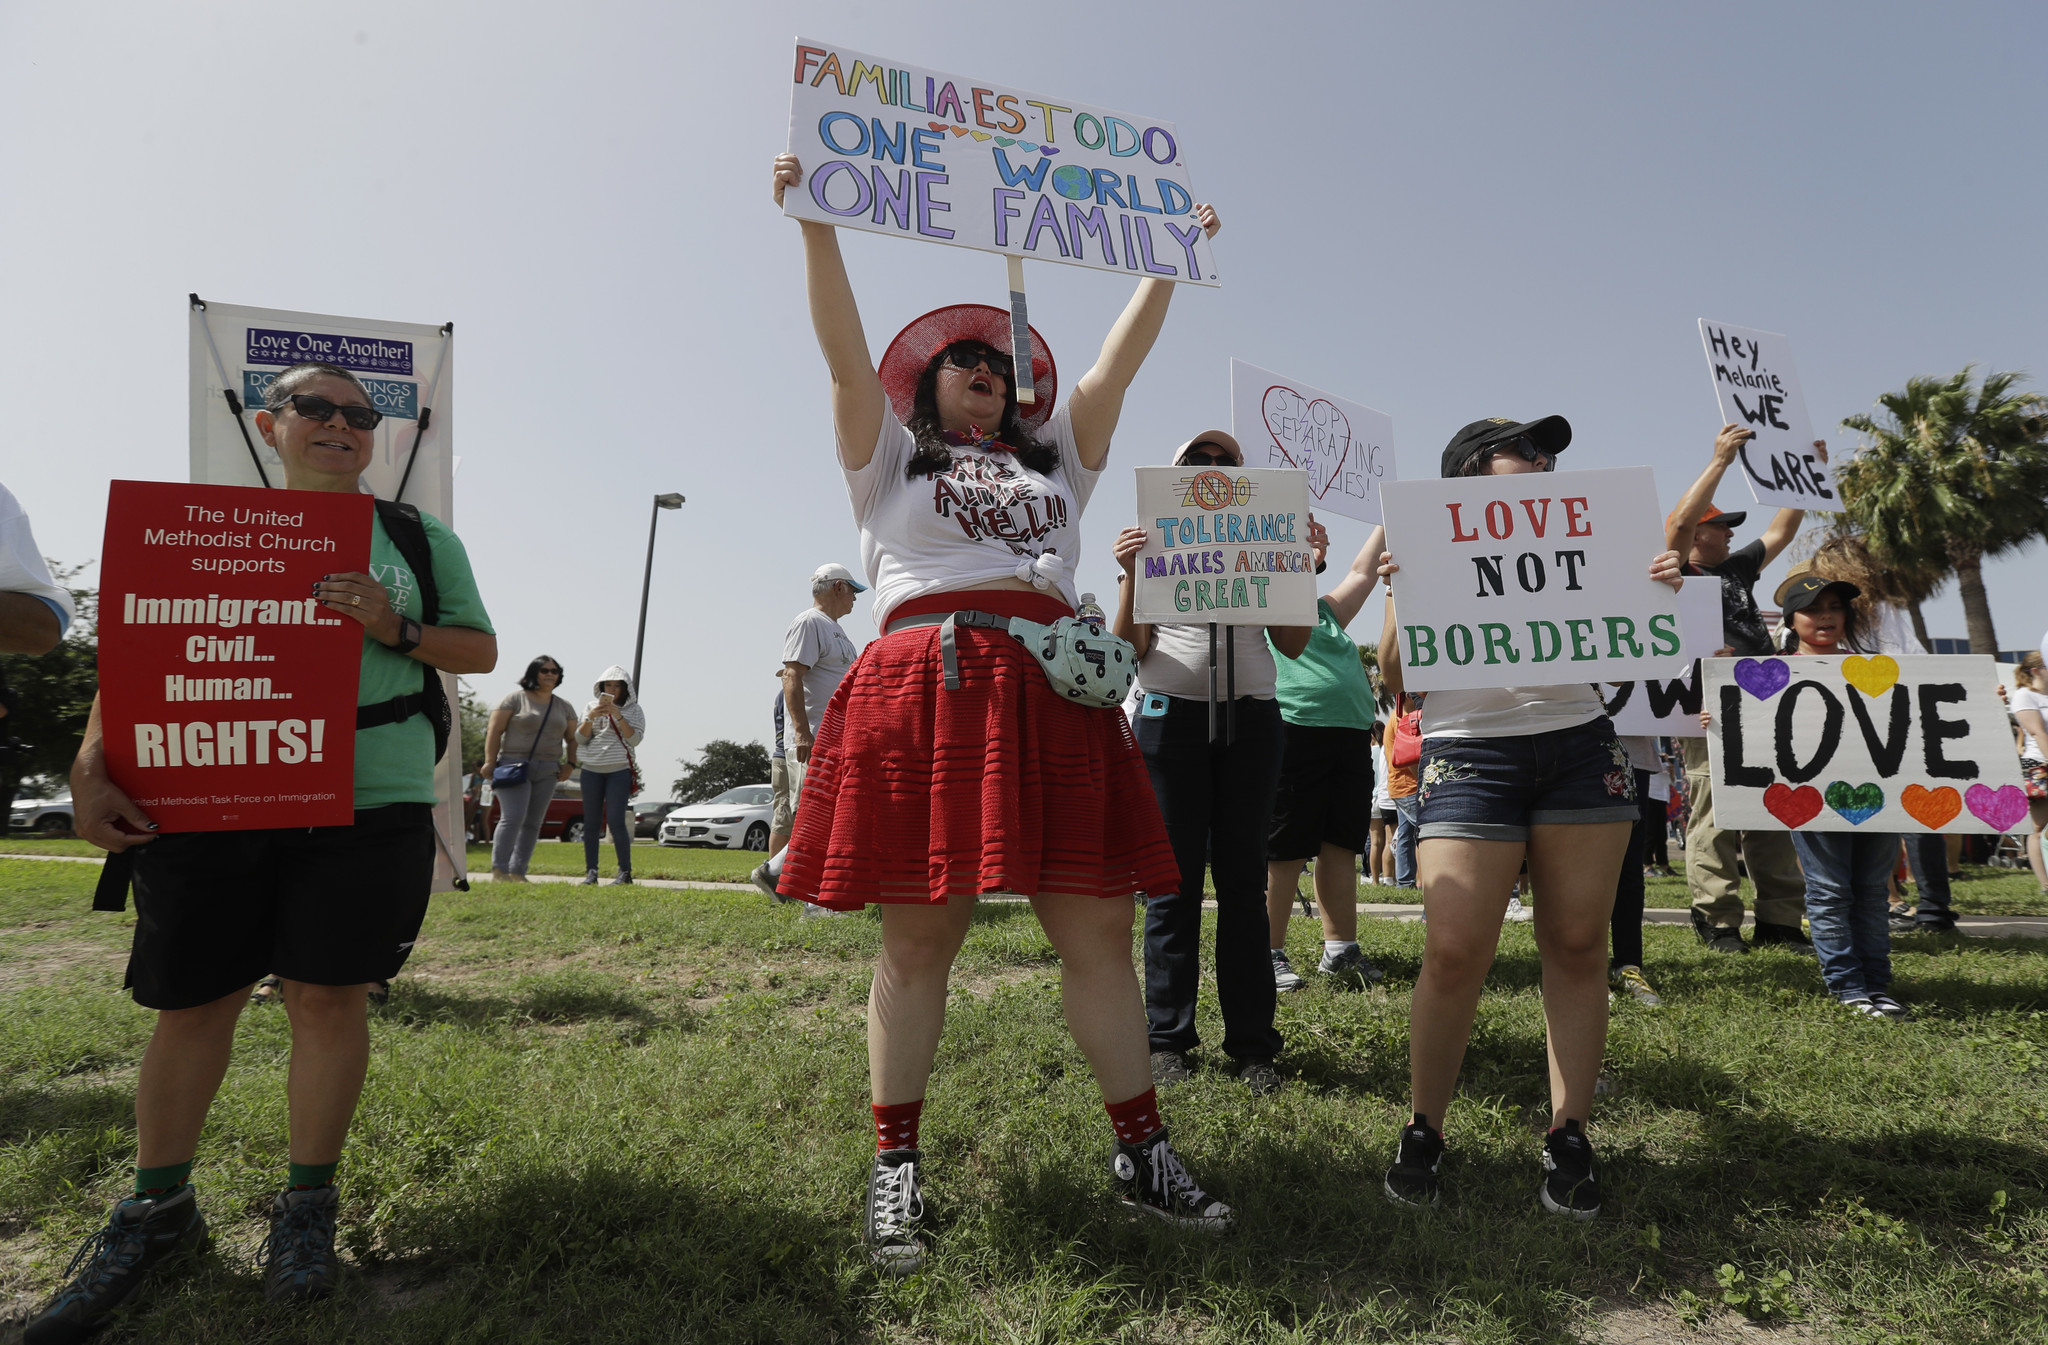 Protesters gather near a U.S. Customs and Border Protection station to speak out against immigration